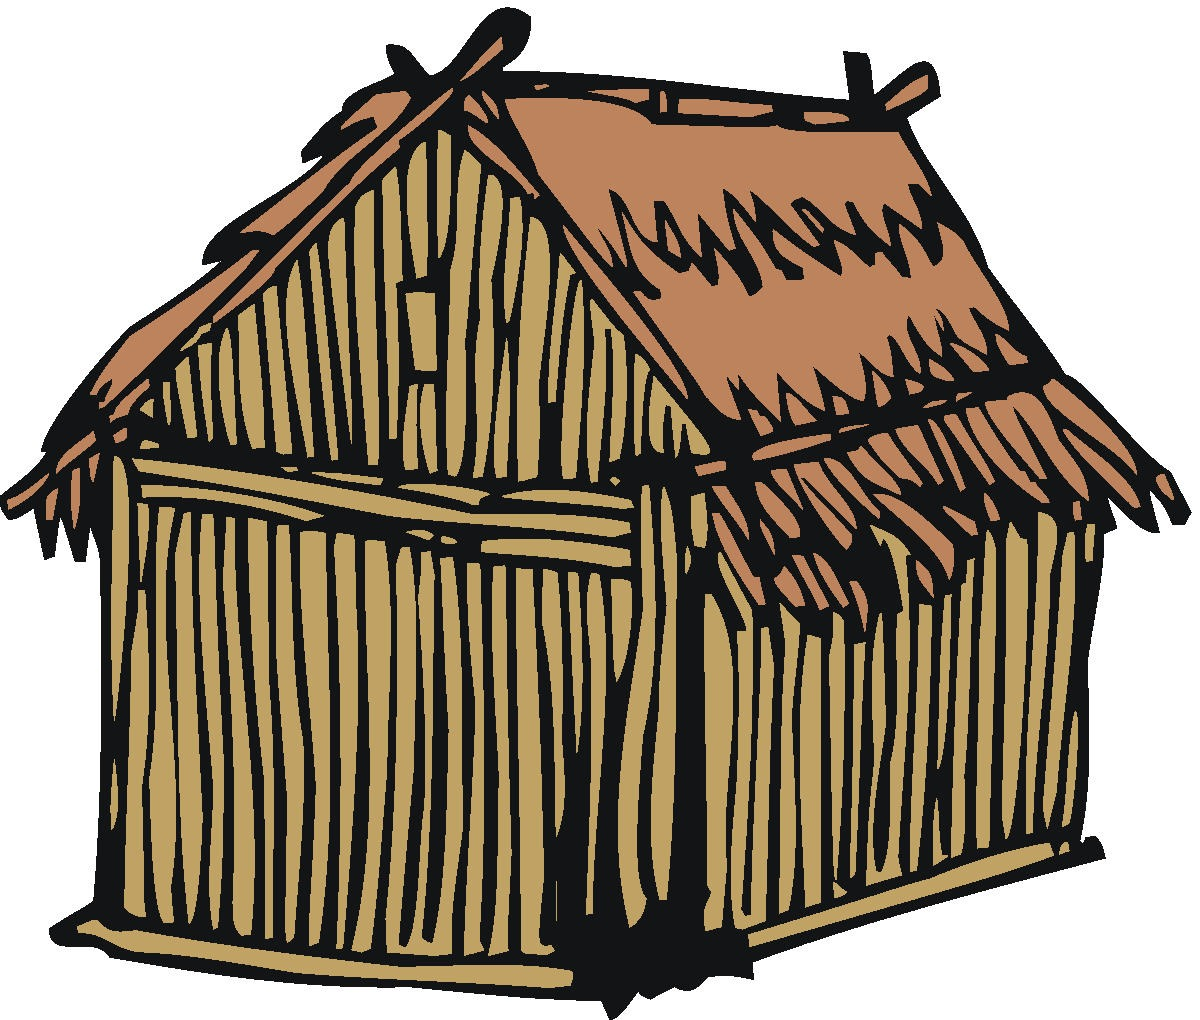 Hut House Logo: Hut Clipart, Hut Transparent FREE For Download On